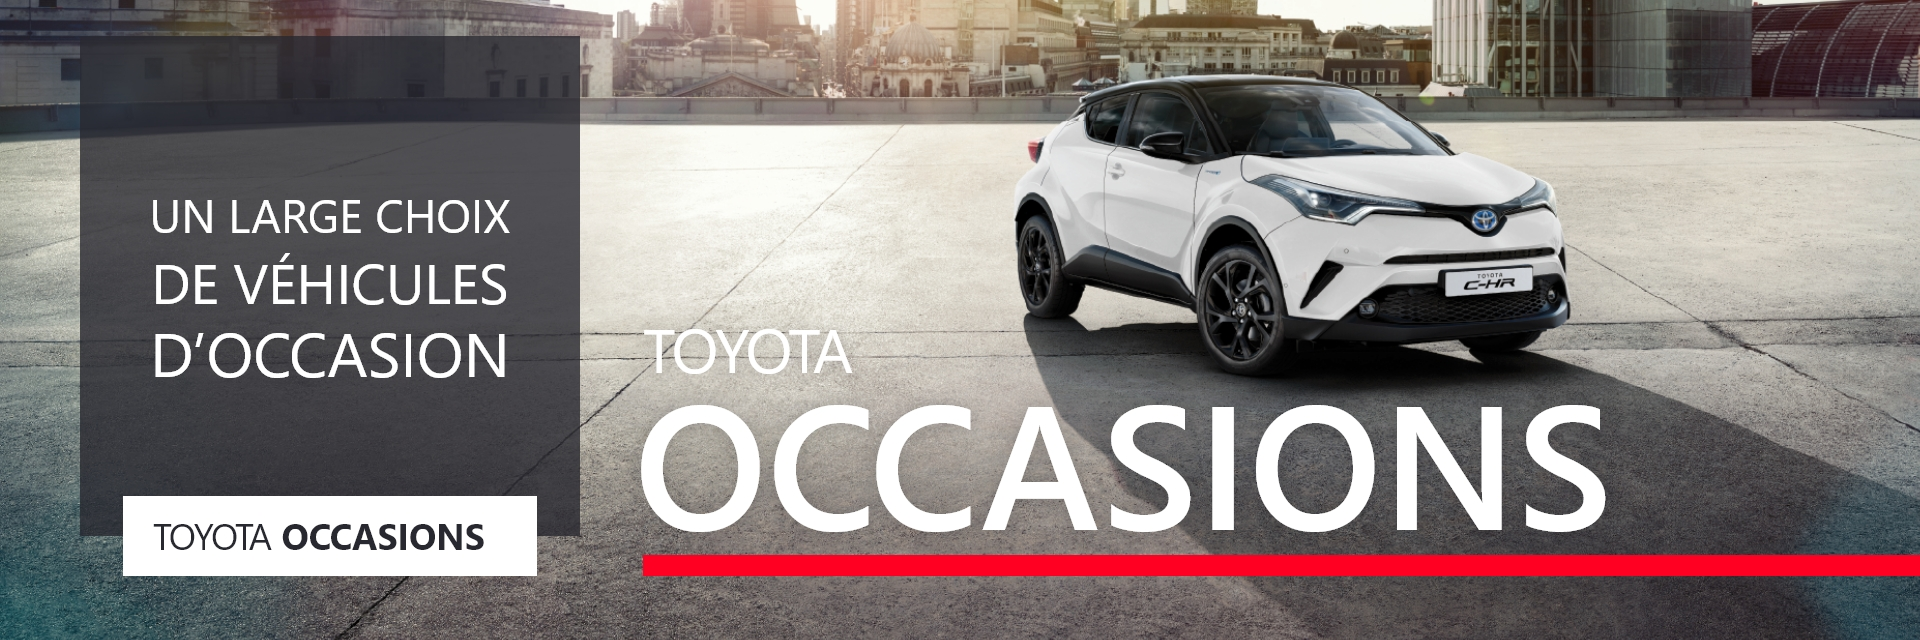 Toyota-occasions